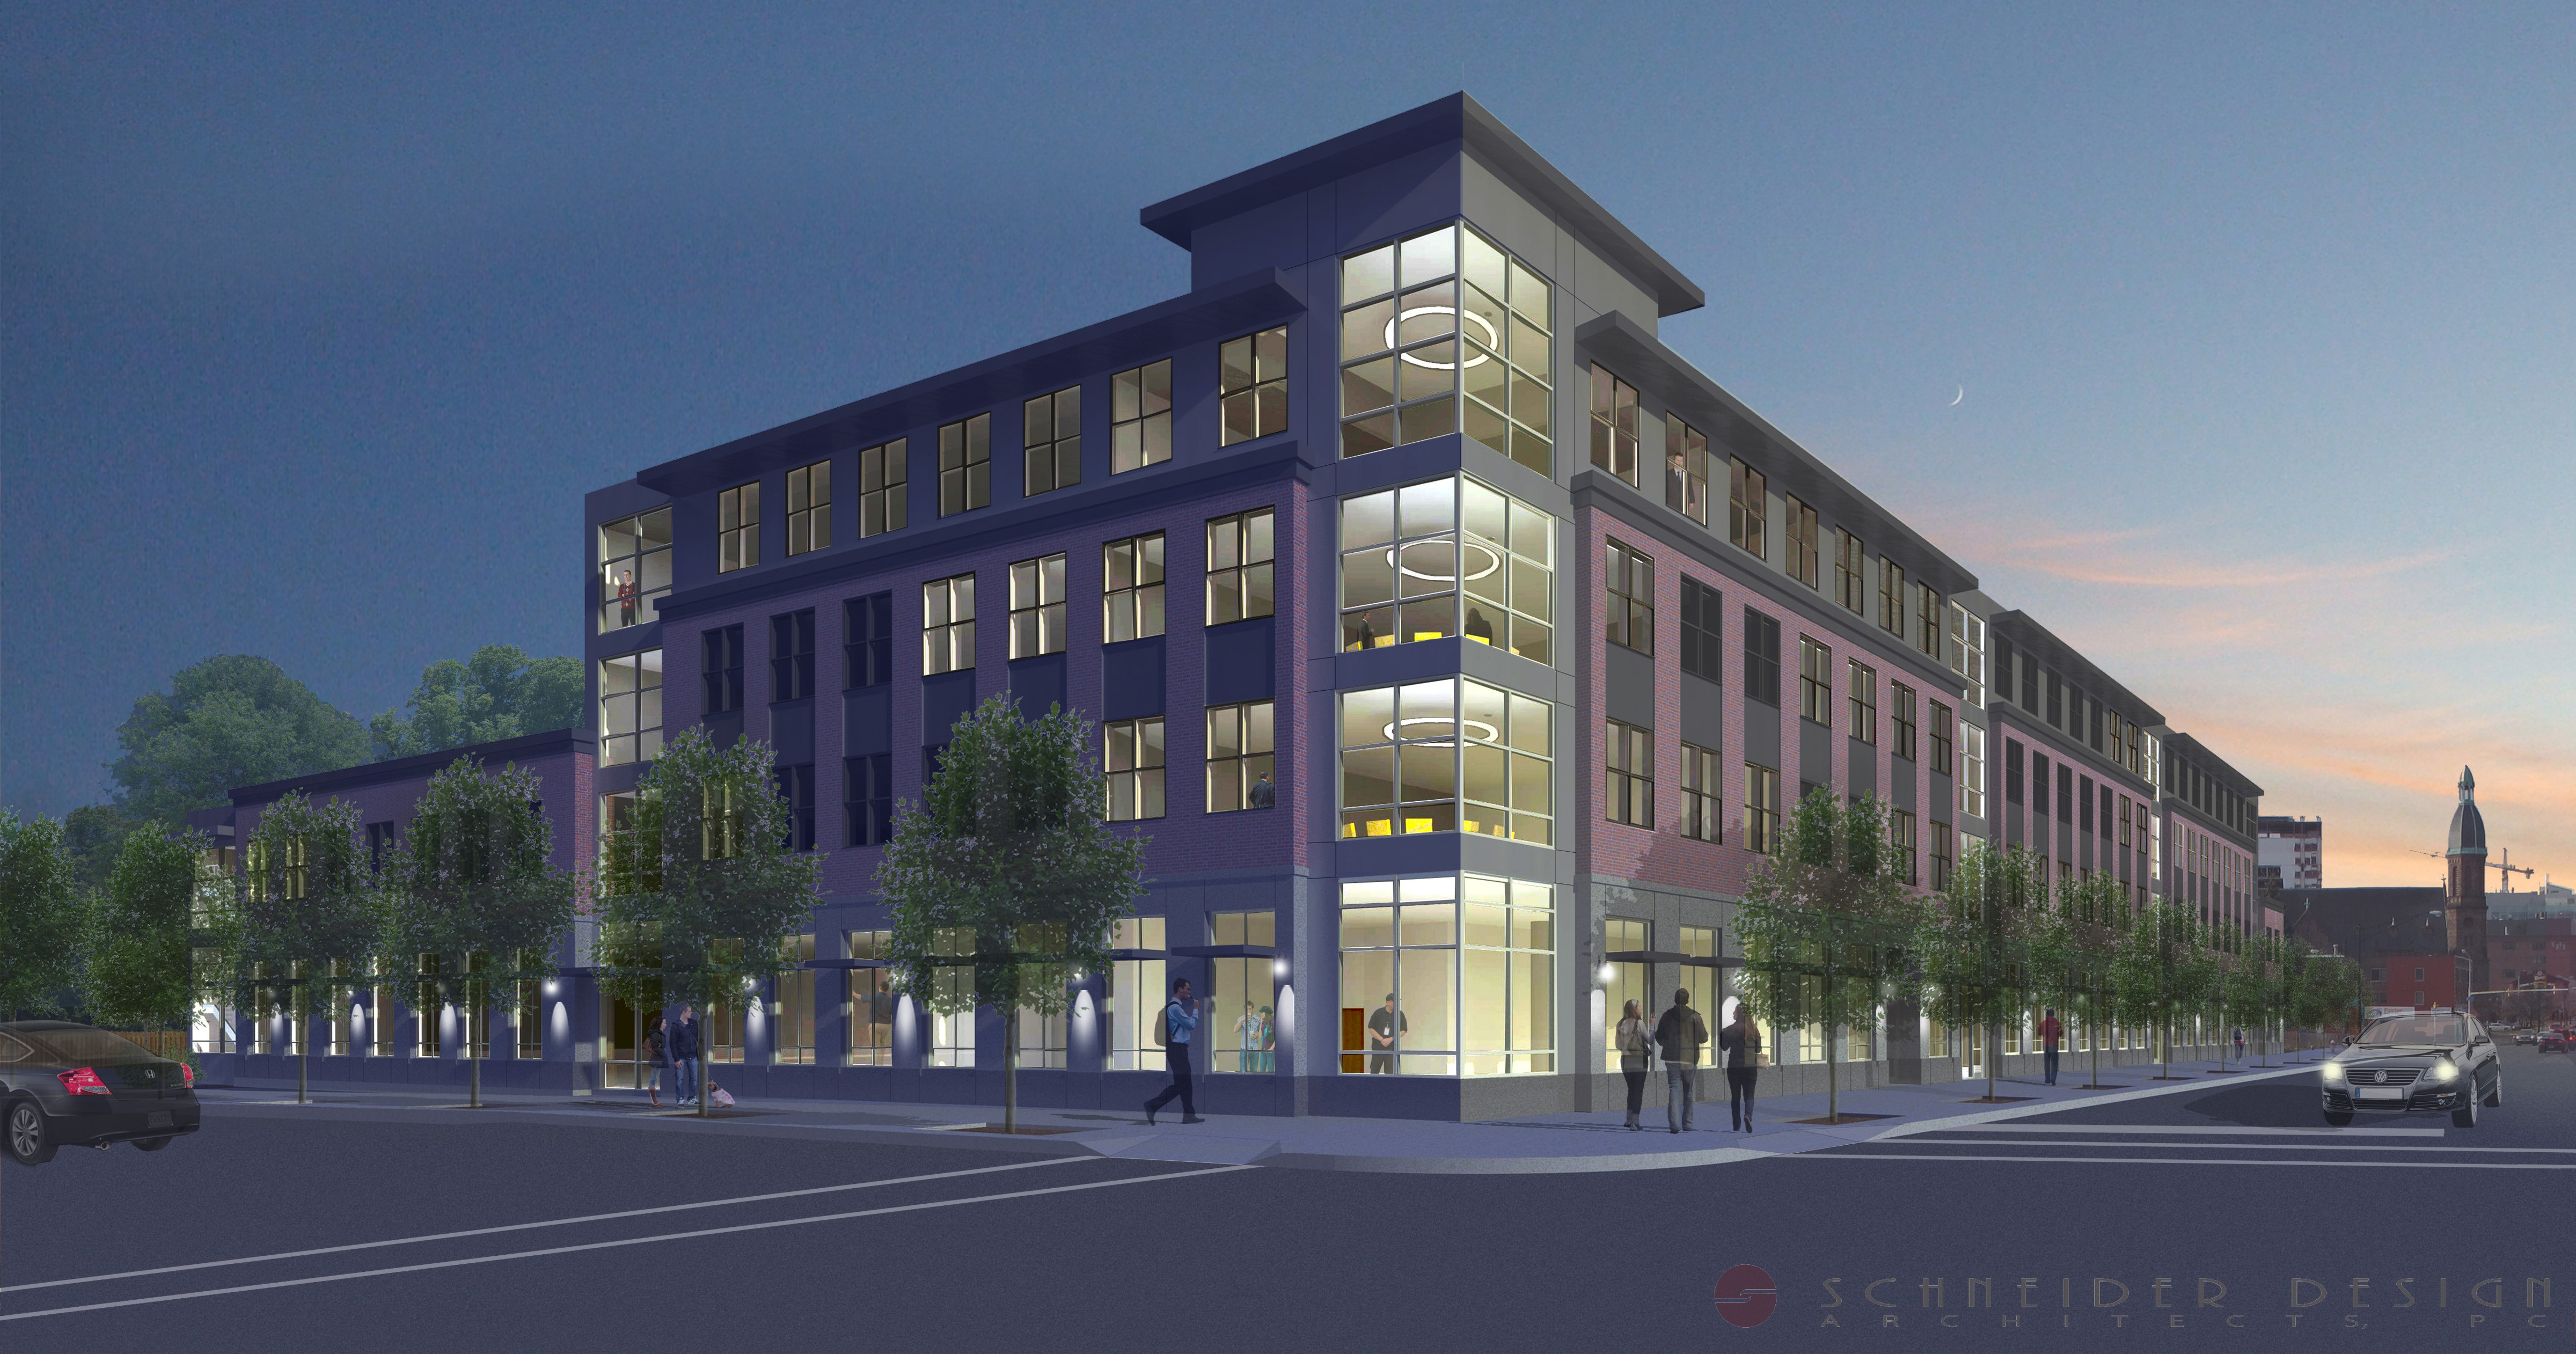 A rendering of a proposed medical office building that Dr. Fadi Dagher's Cedarland Development Group wants to construct at 1159 Main, at the corner of Best Street, where the Buffalo Motor Lodge used to be located.